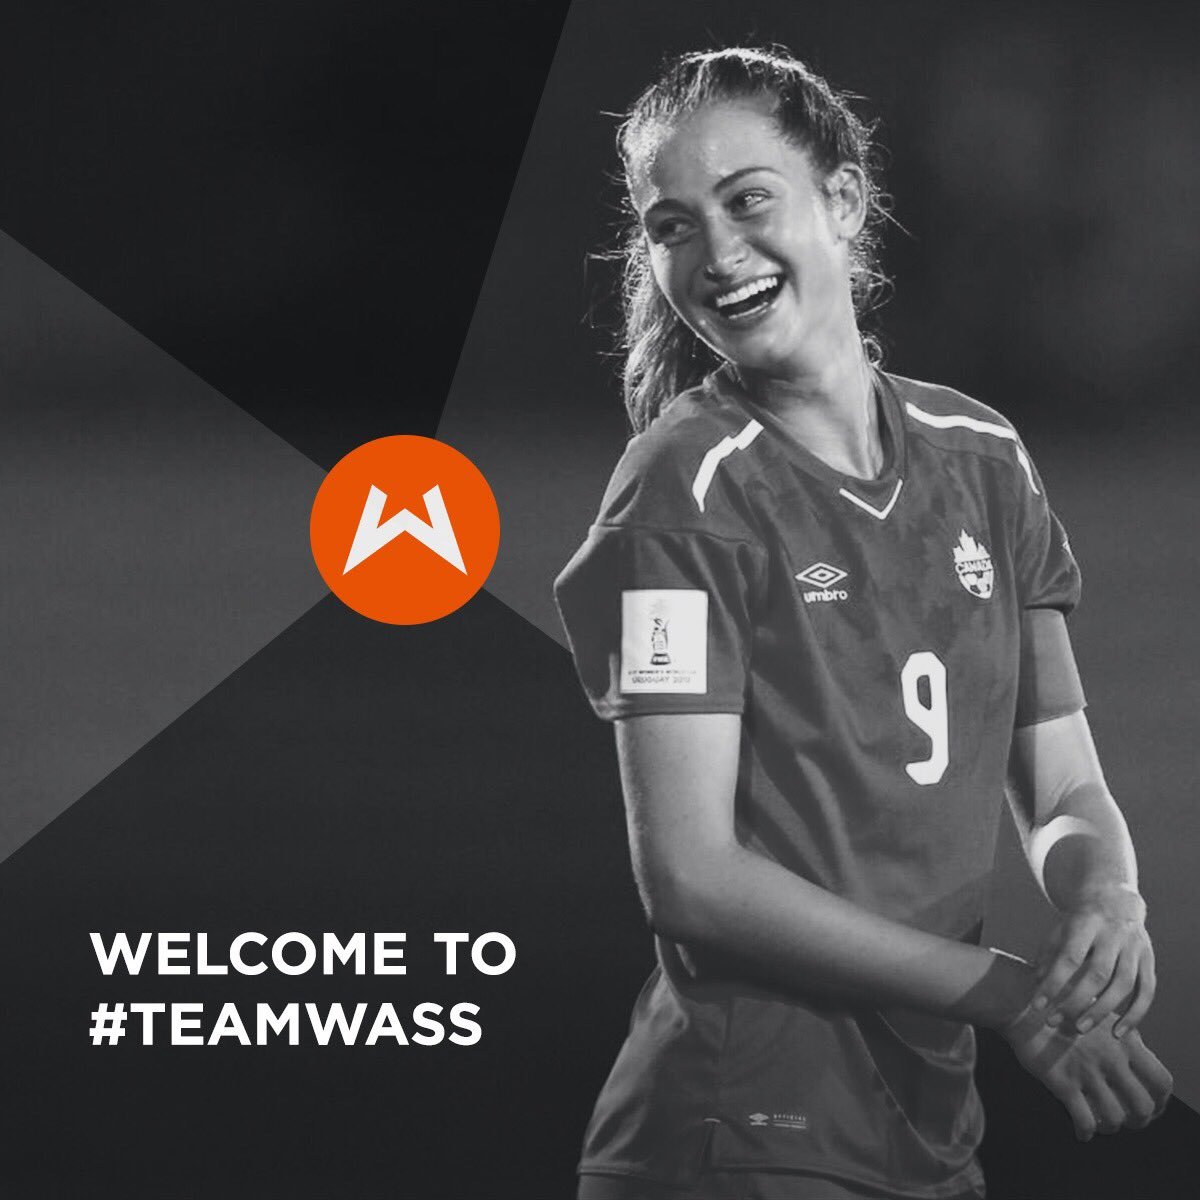 Thrilled to welcome rising Canadian soccer star @JordynHuitema to #TeamWass! Let's get to work 💪